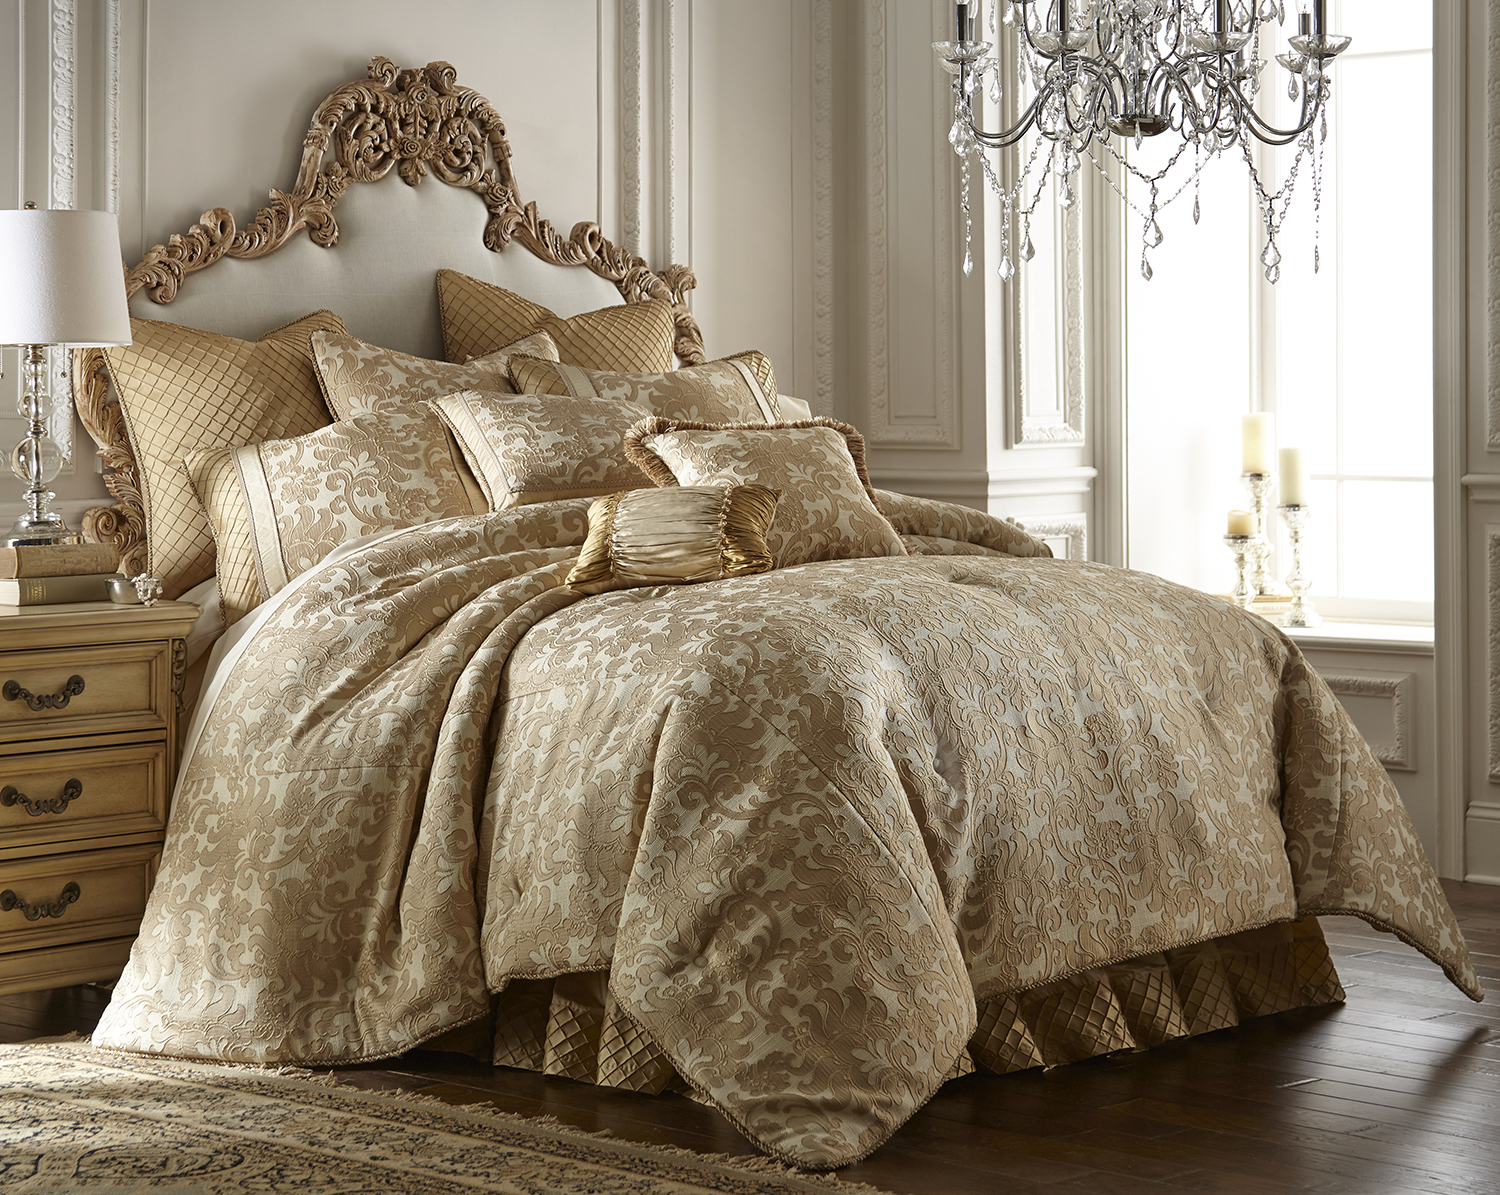 Casablanca By Austin Horn Luxury Bedding